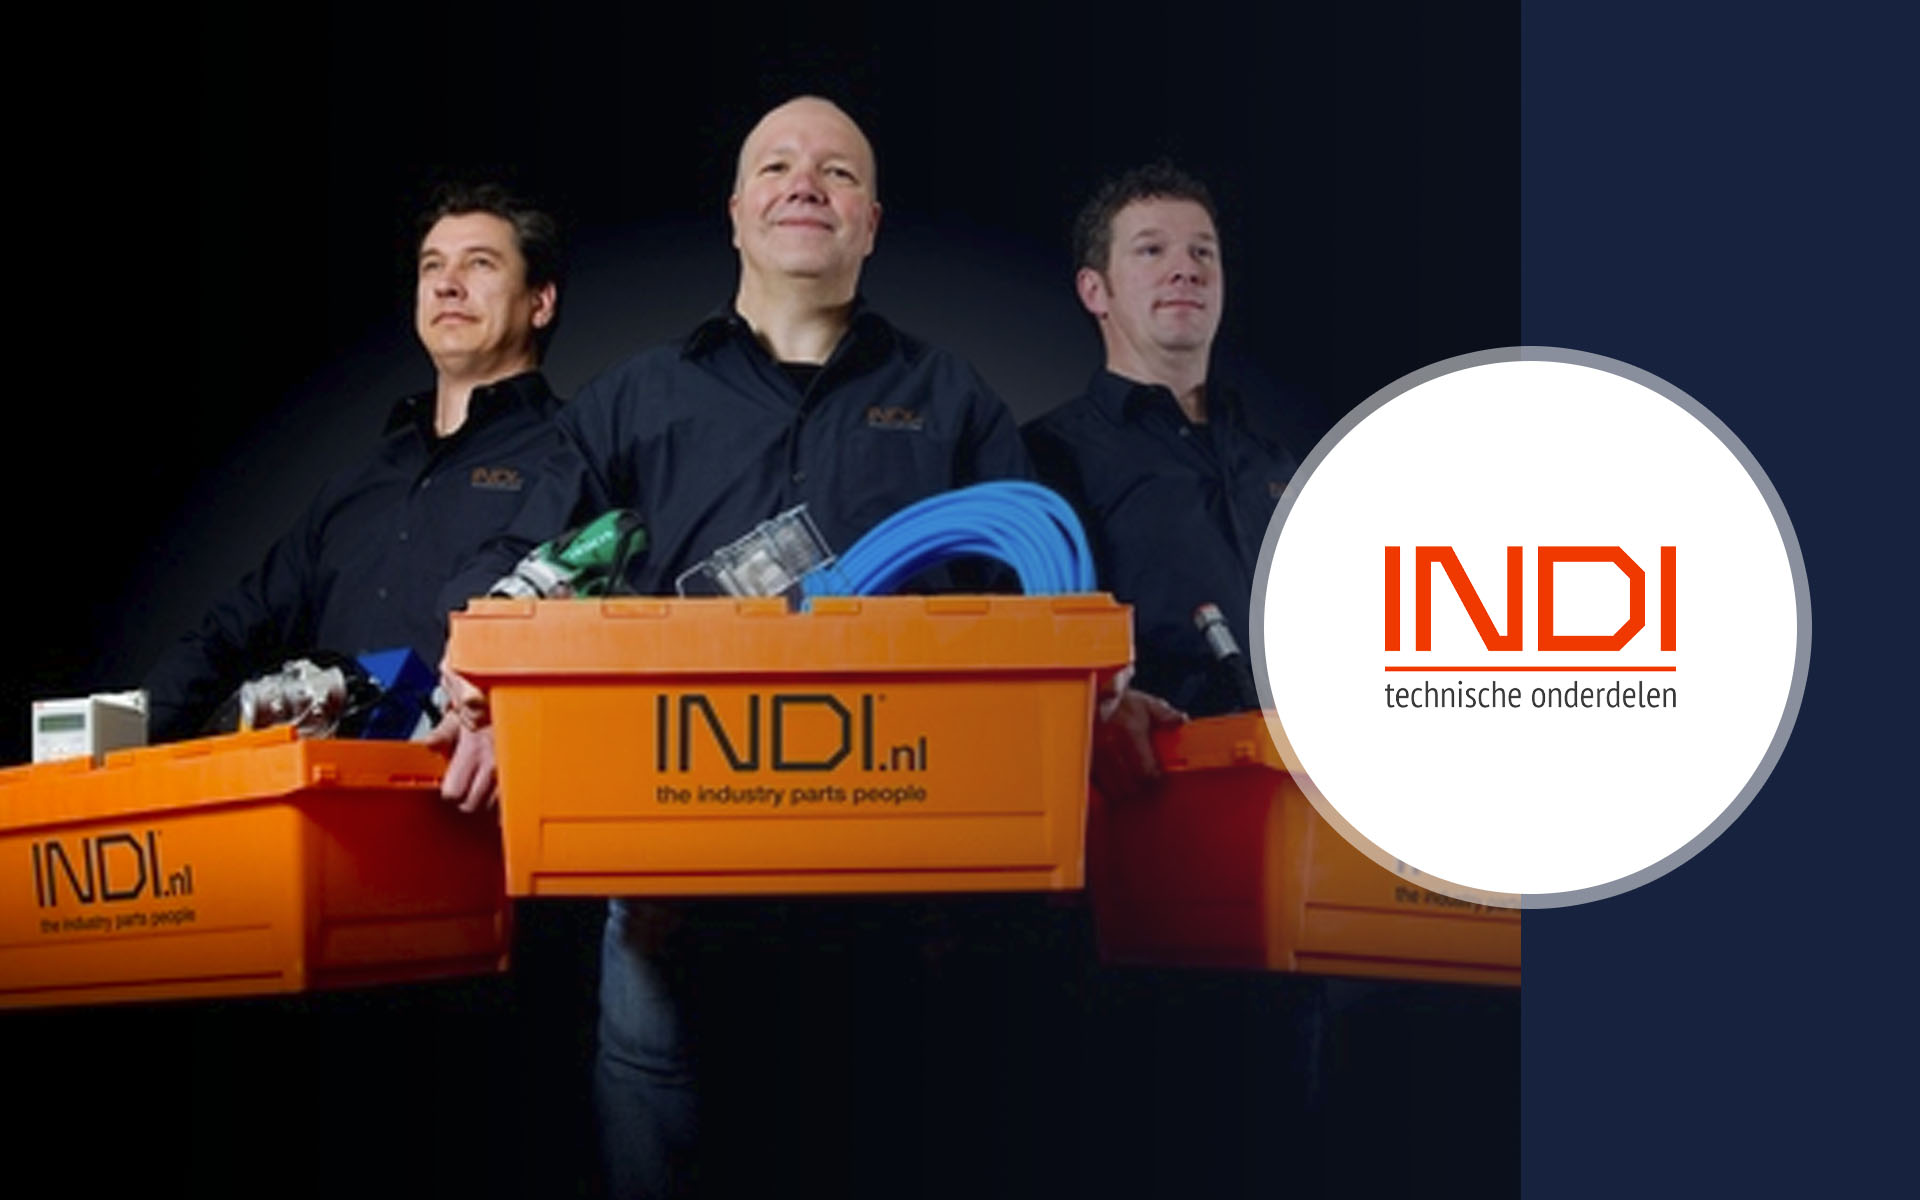 Personalized Search: Increasing conversion rates on INDI.nl